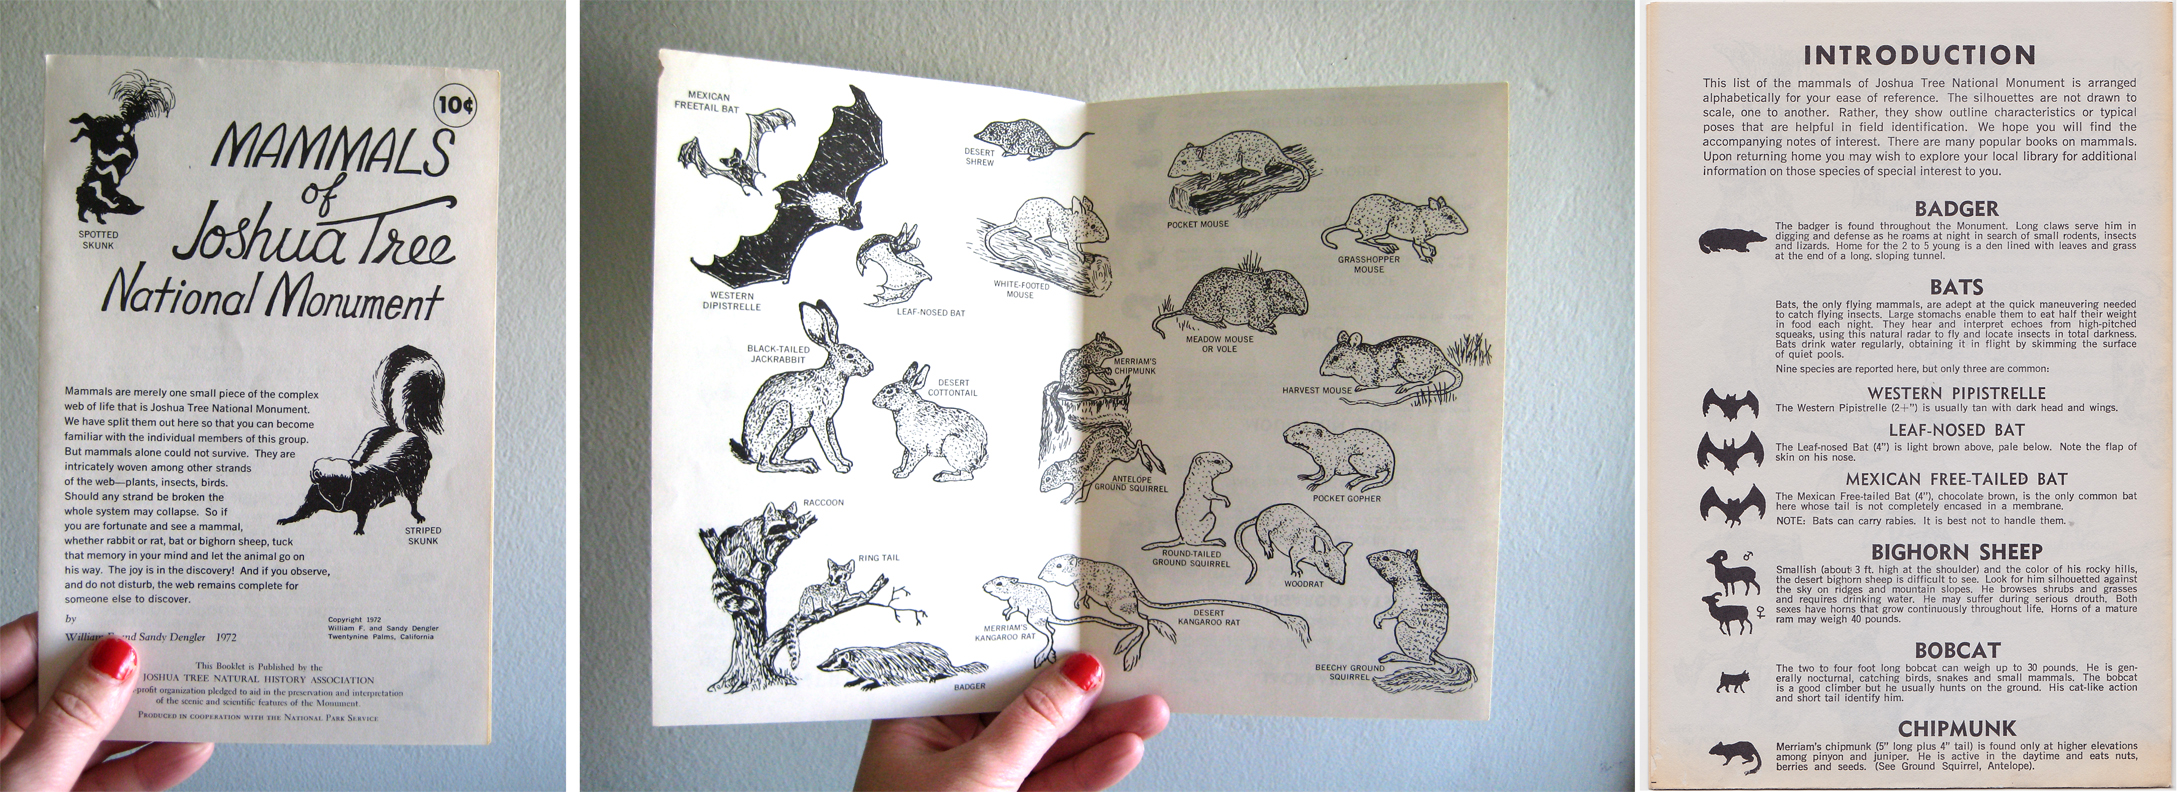 Mammals of Joshua Tree National Monument , by the   Joshua Tree Natural History Association   in 1972.